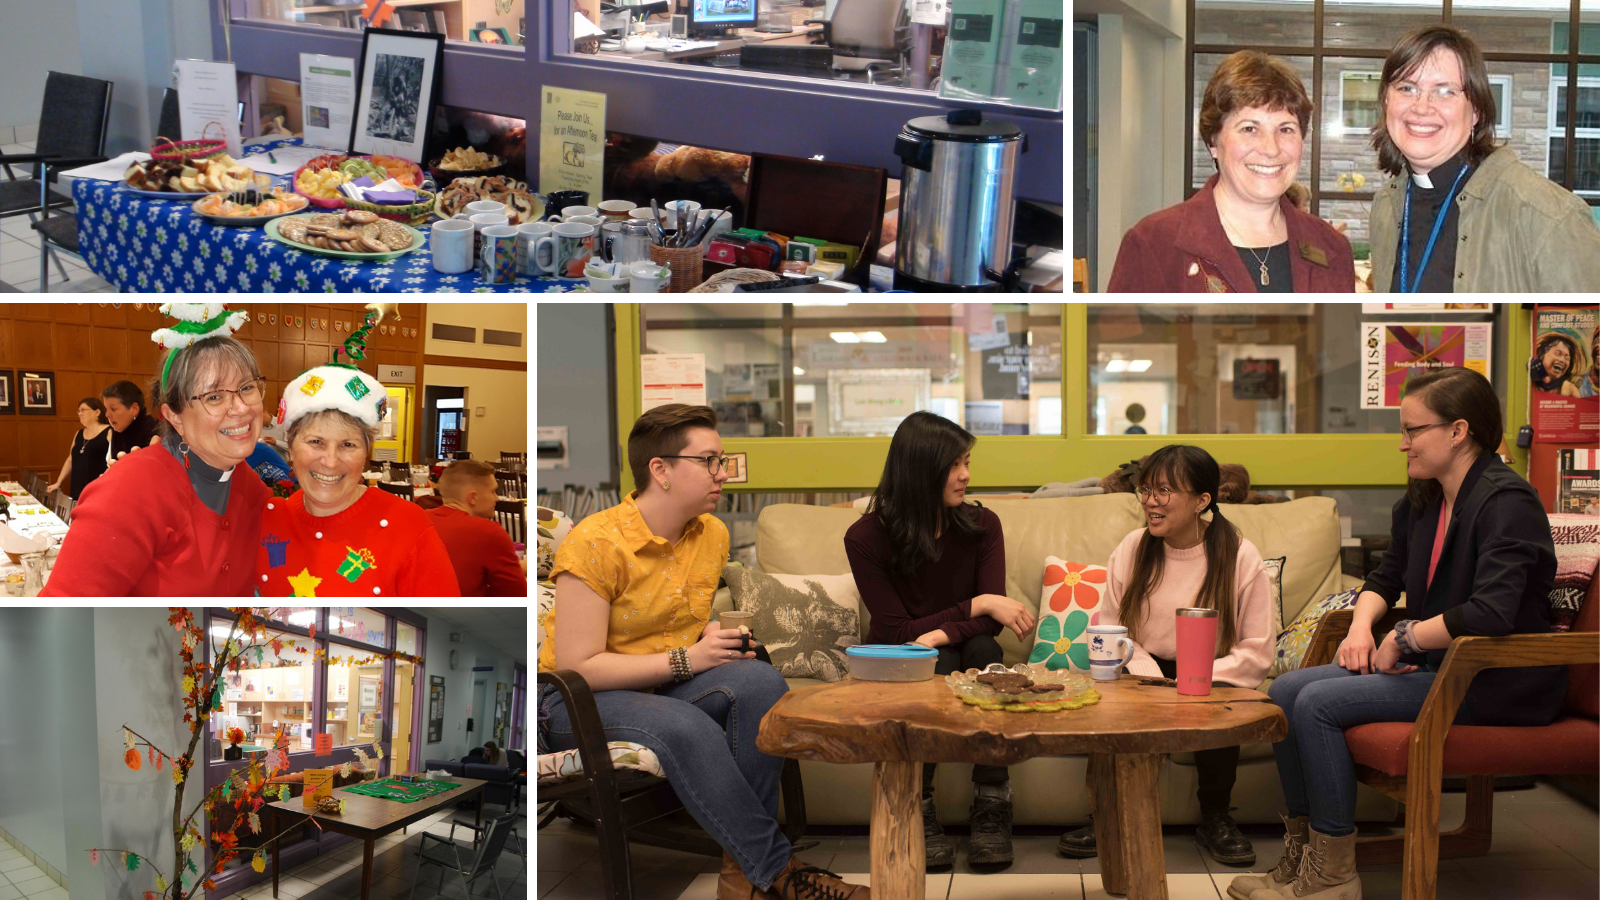 Collage of photos from the Ministry Centre. Shows the couches and chairs, some students talking, and cookies and coffee!